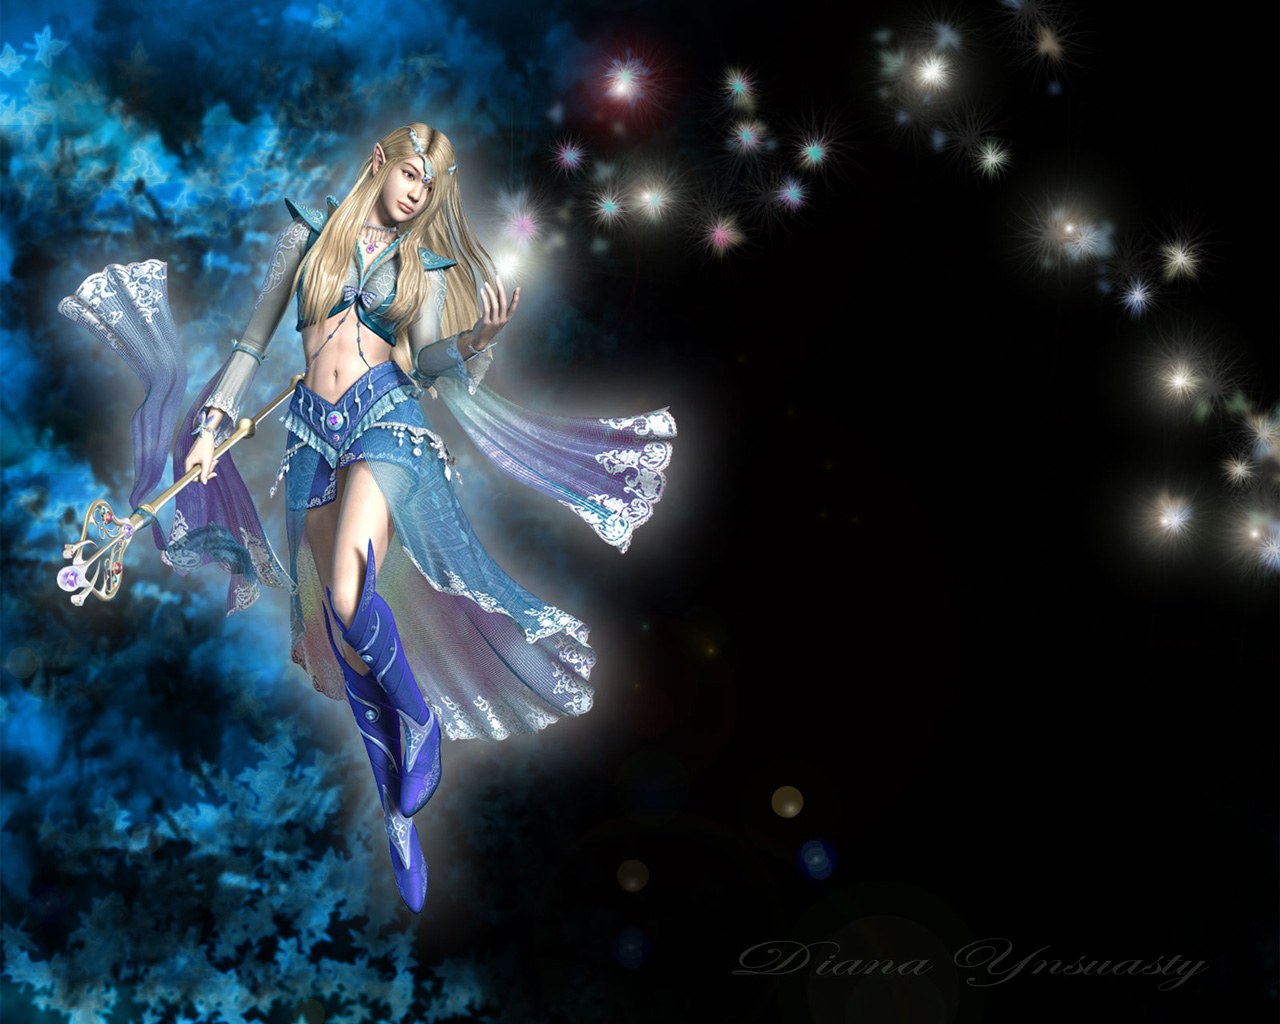 Free hd fantasy woman wallpapers 1600x1200 wallpapers - 3d fantasy wallpaper ...